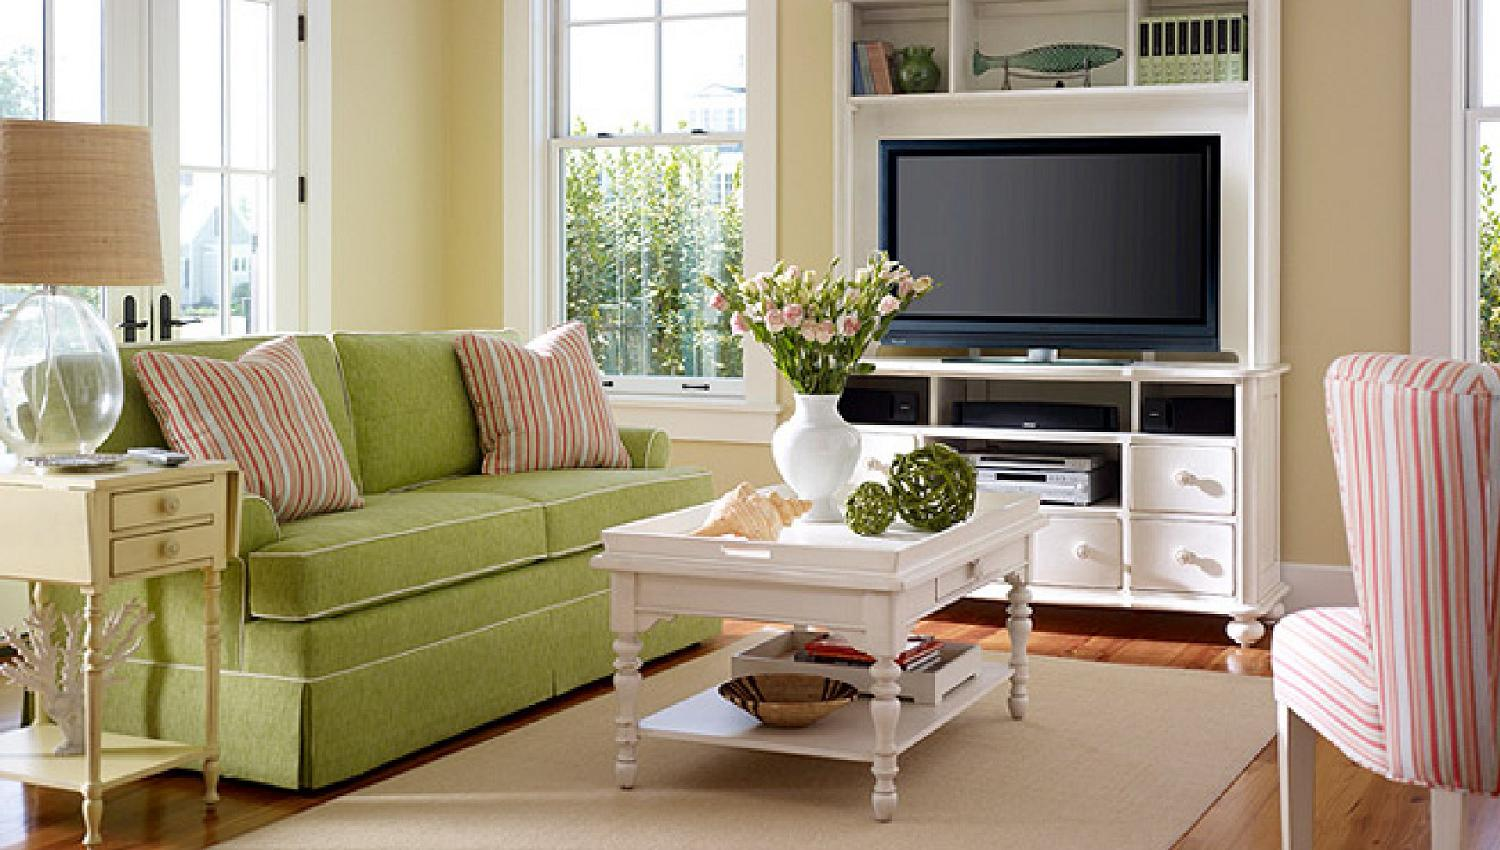 Impressive Small Country Living Room Decorating 1500 x 850 · 176 kB · jpeg